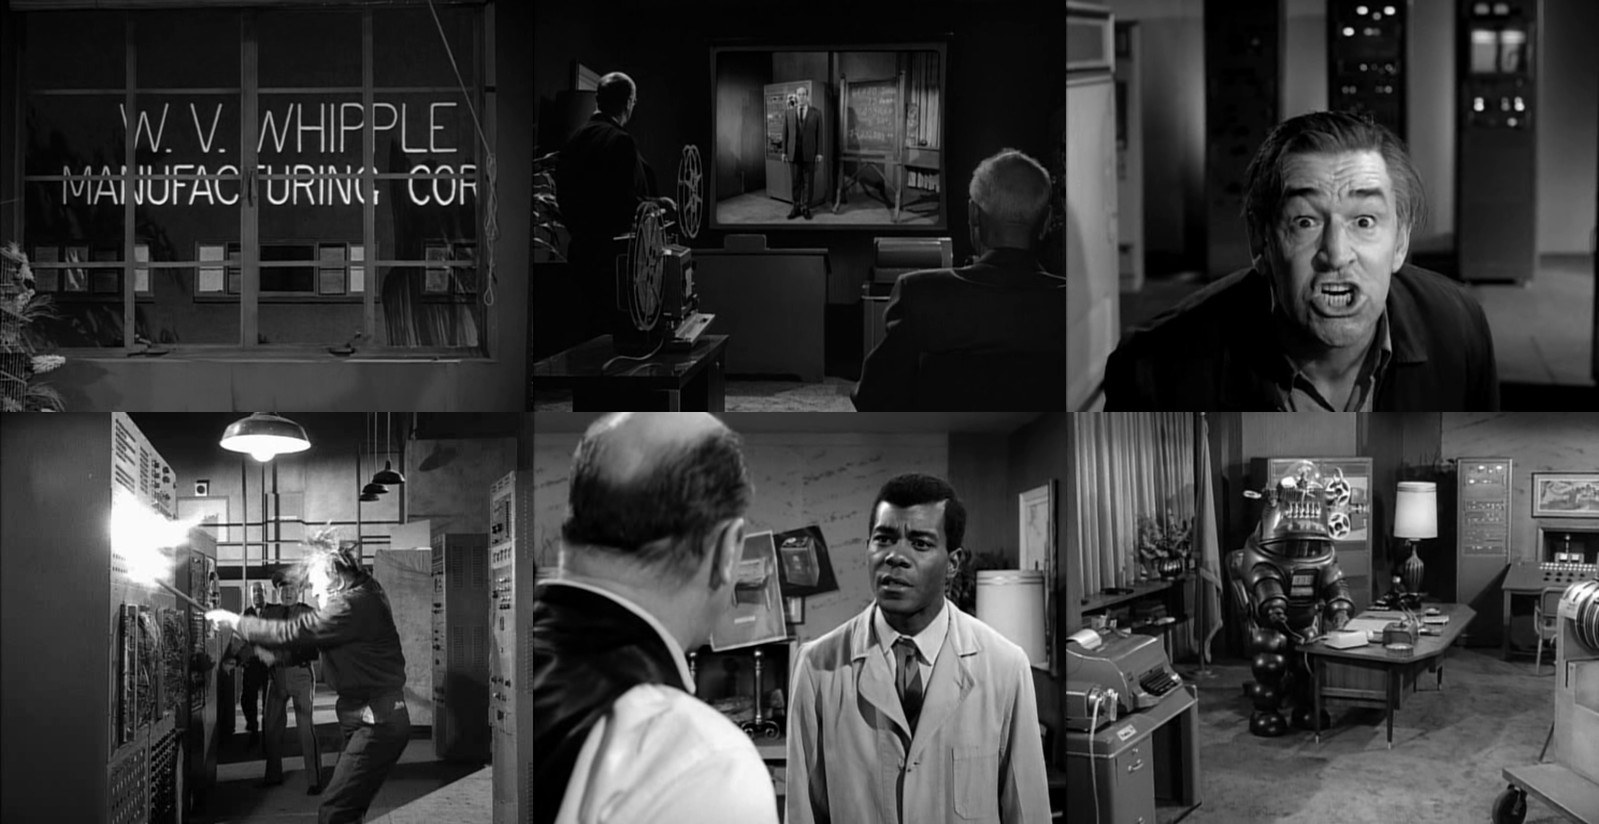 Twilight Zone - 153 - S05E33 - 1964_05_15 - The Brain Center at Whipple's